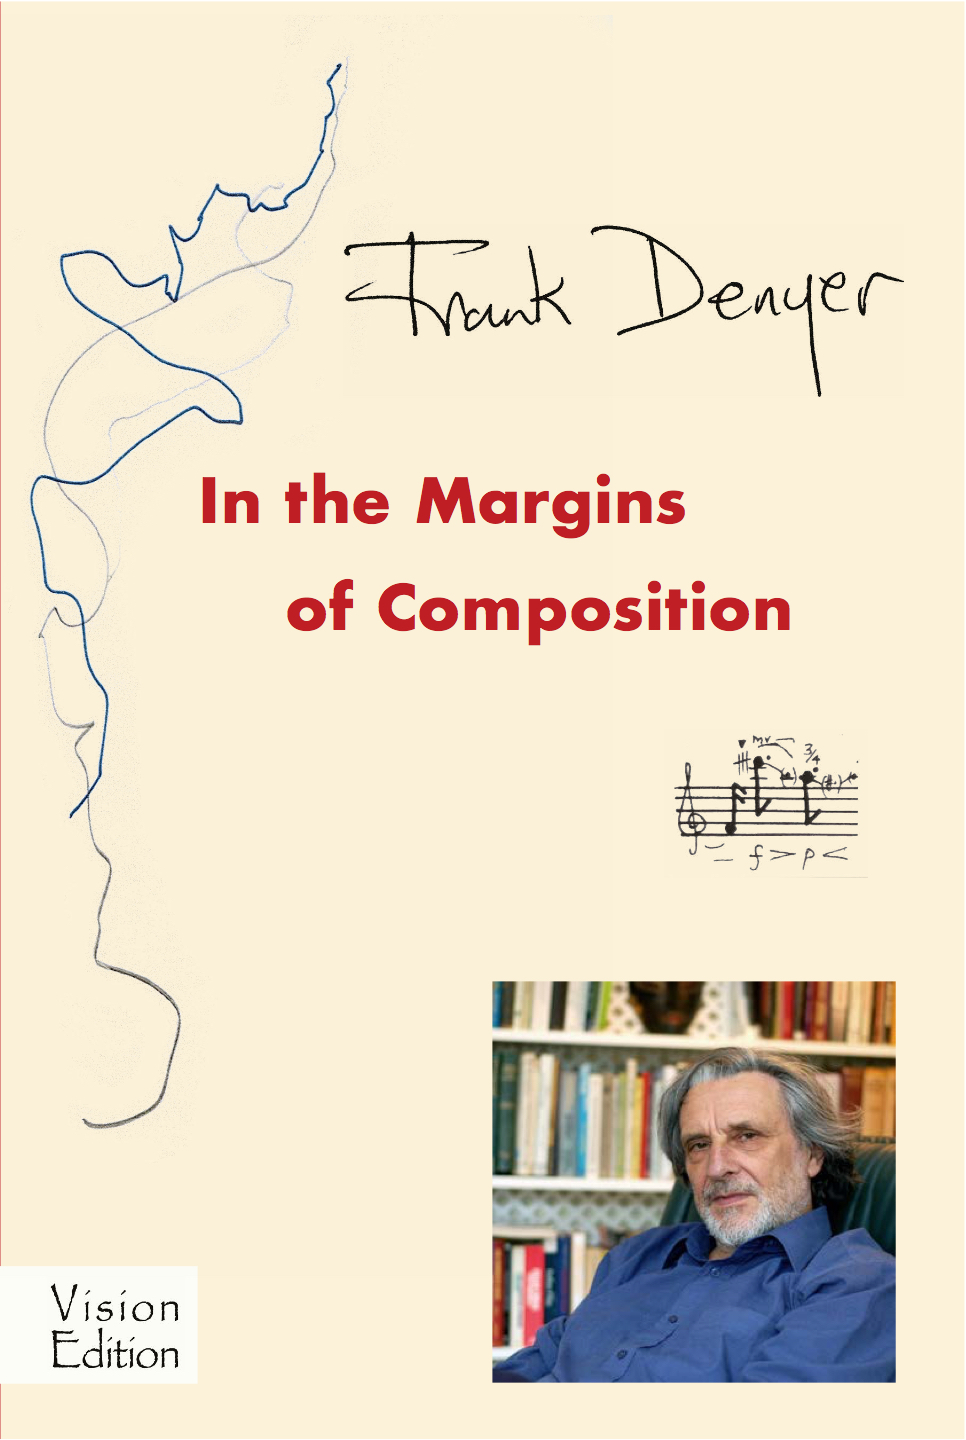 Frank Denyer: In the Margins of Composition